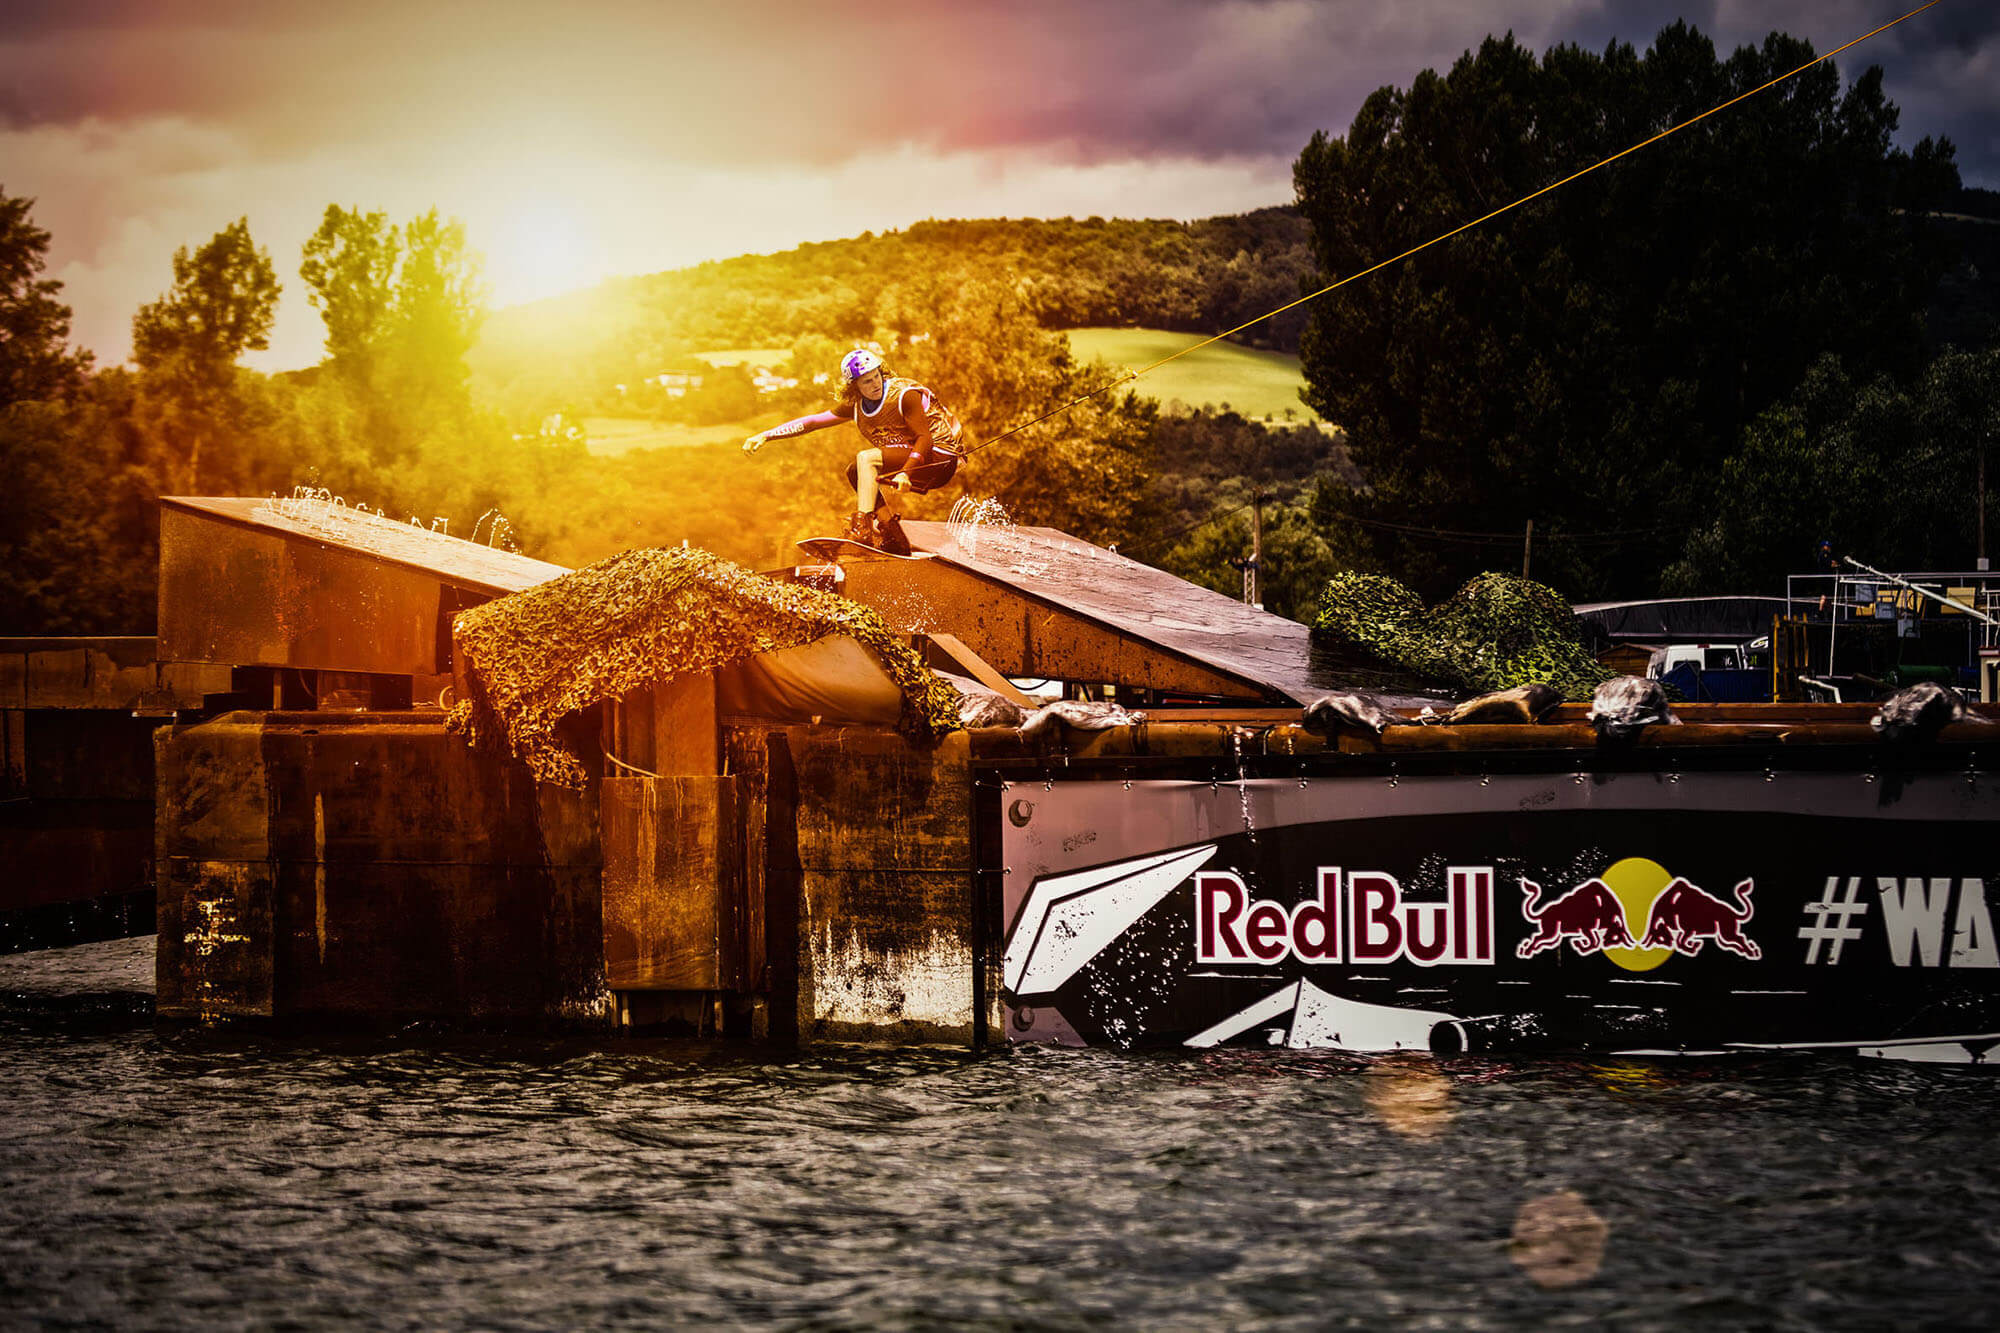 wakeboard wakeboarding redbull red bull wake of steel linz action sports photography sportfotografie flap photography fotograf philipp greindl photographer